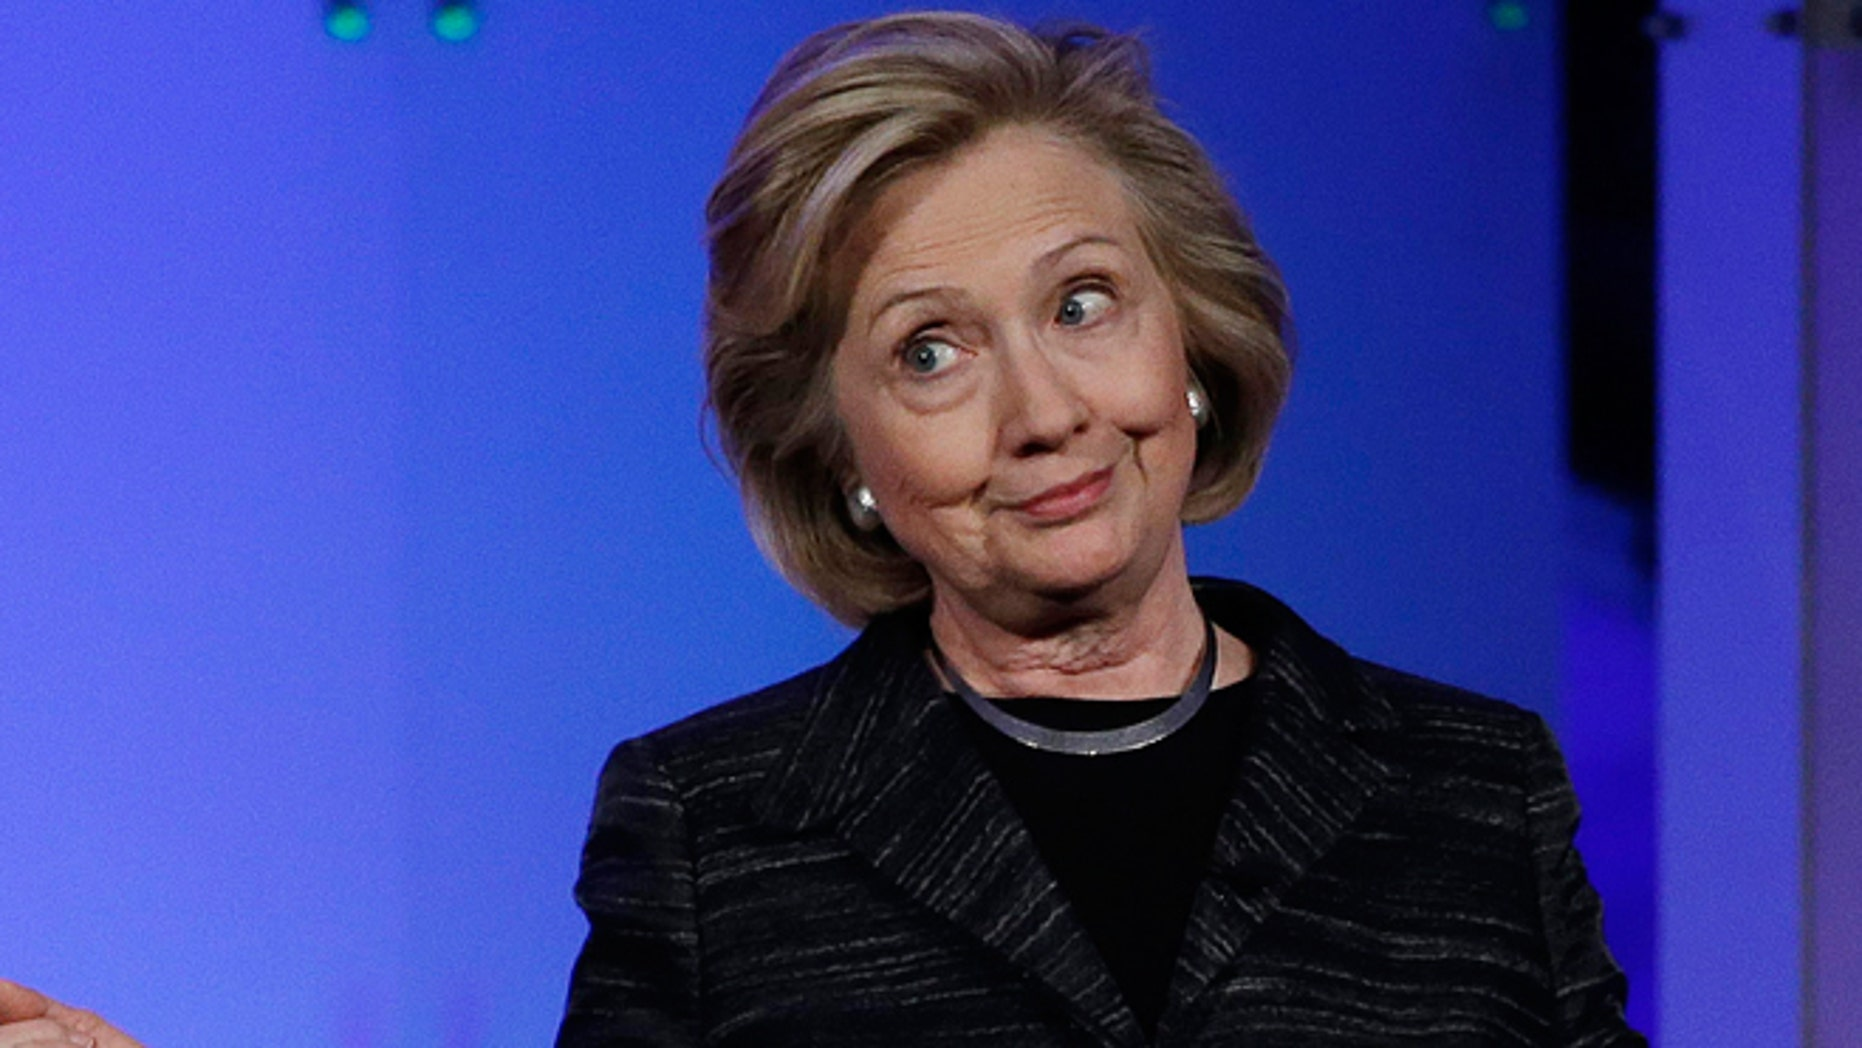 Feb. 24, 2015: Hillary Rodham Clinton  jokes with the crowd during a keynote address at the Watermark Silicon Valley Conference for Women, in Santa Clara, Calif.